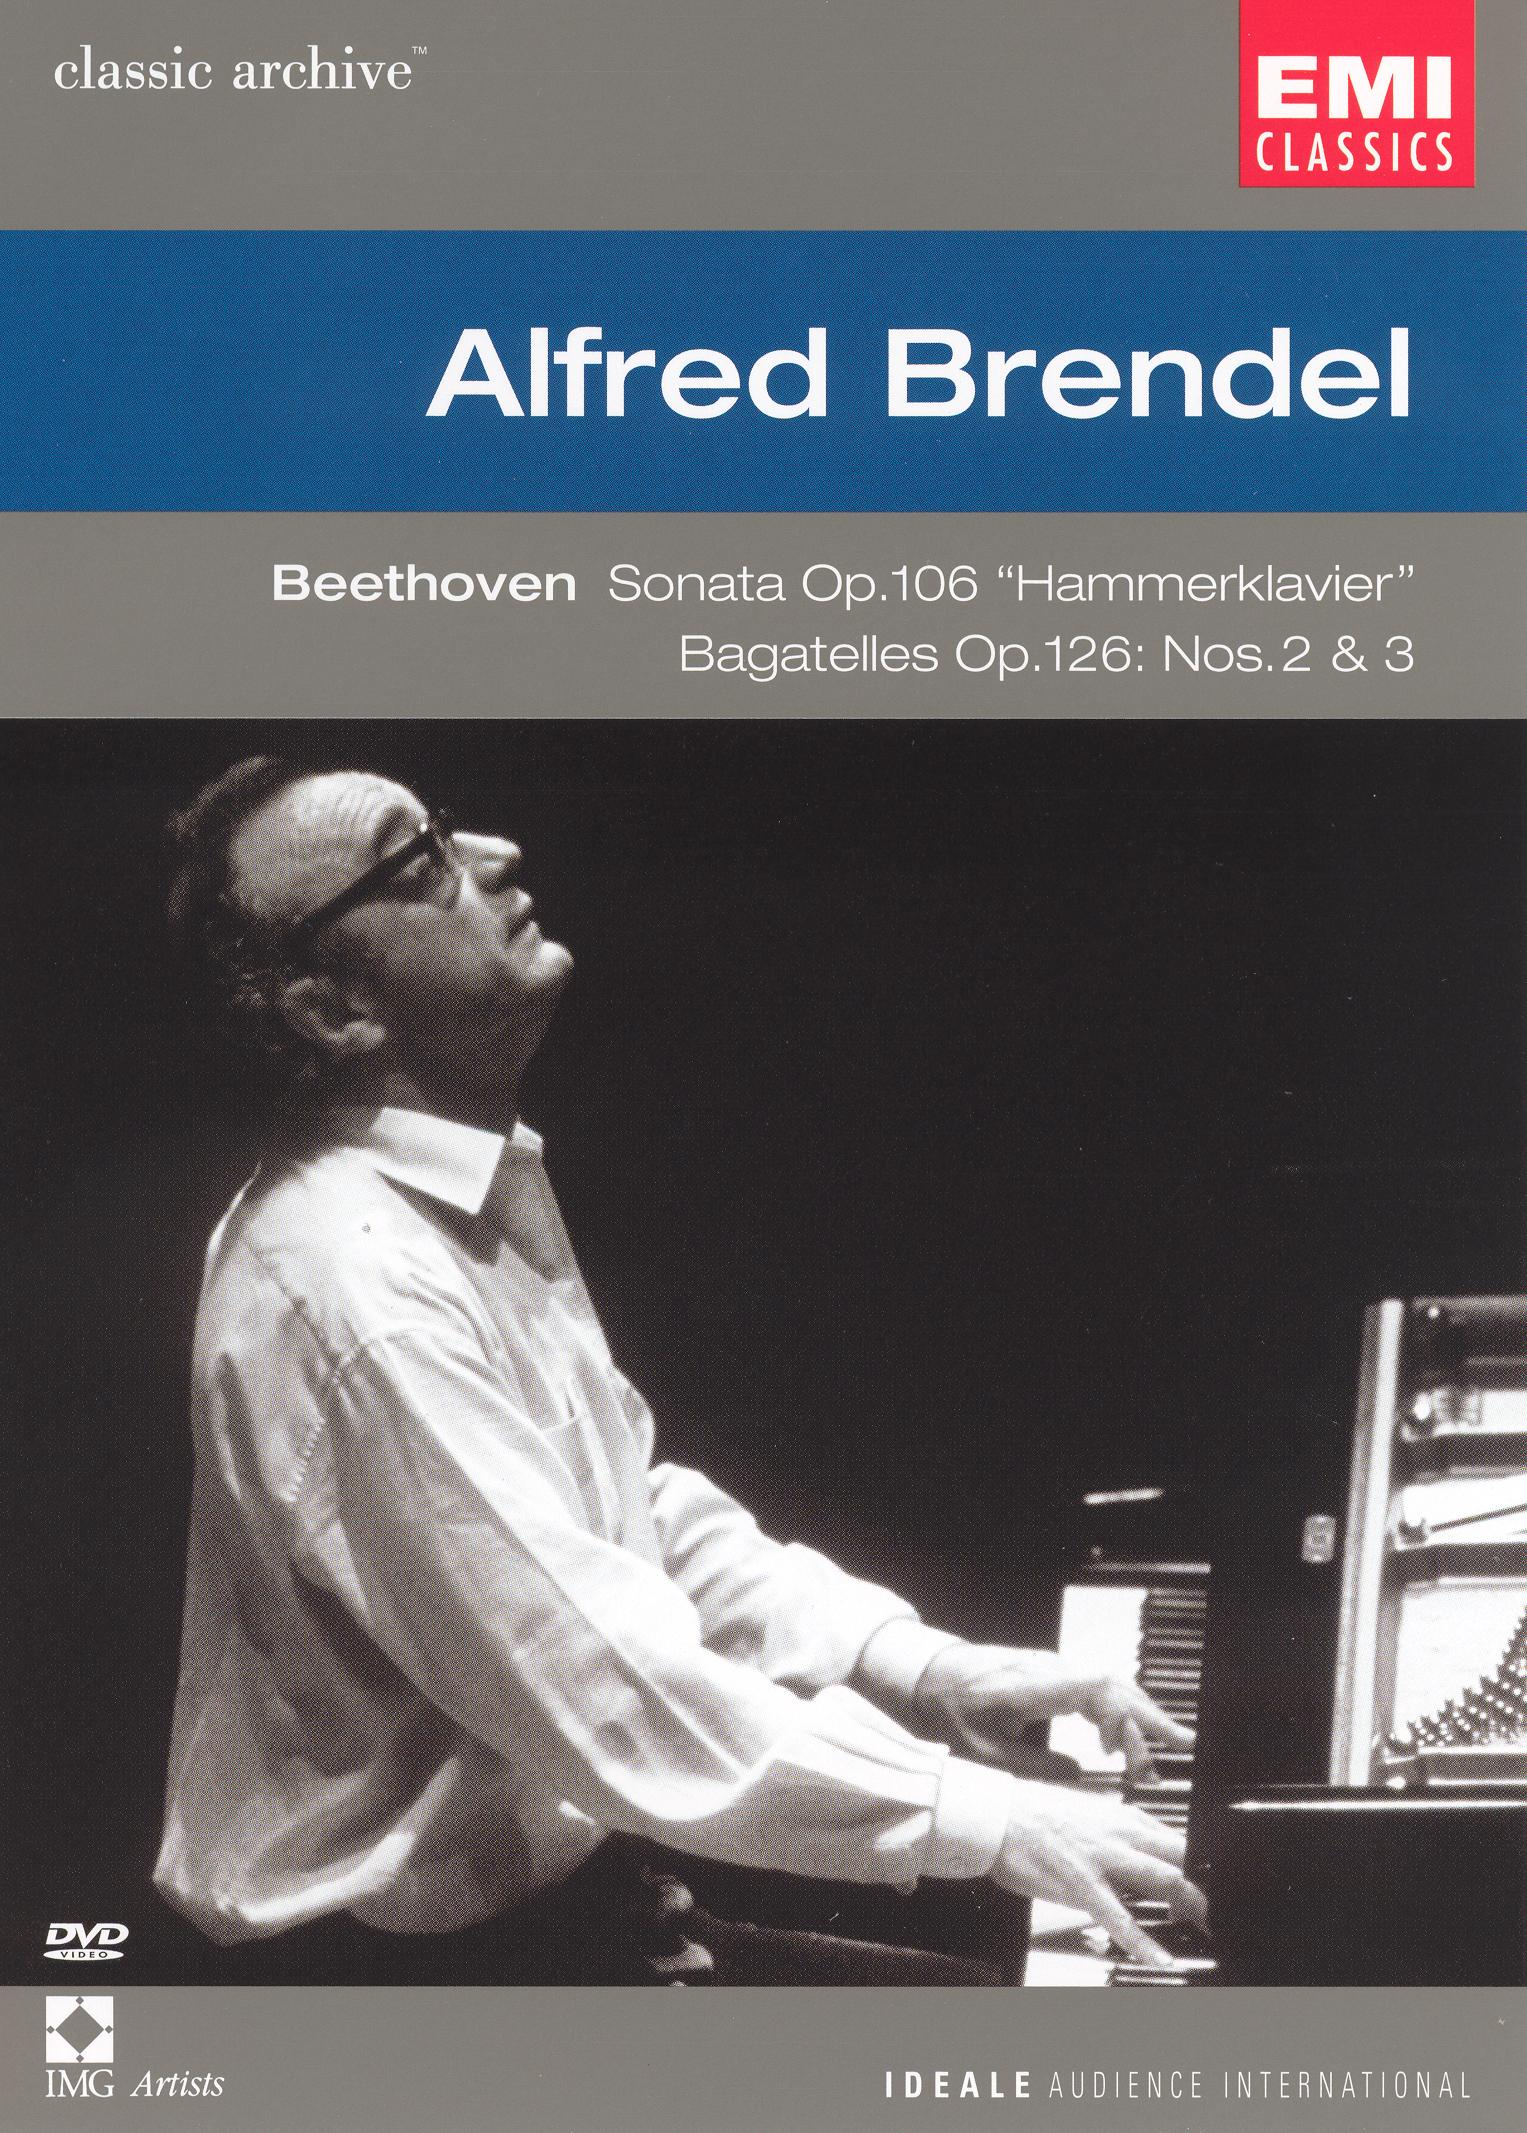 Classic Archive: Alfred Brendel - Beethoven